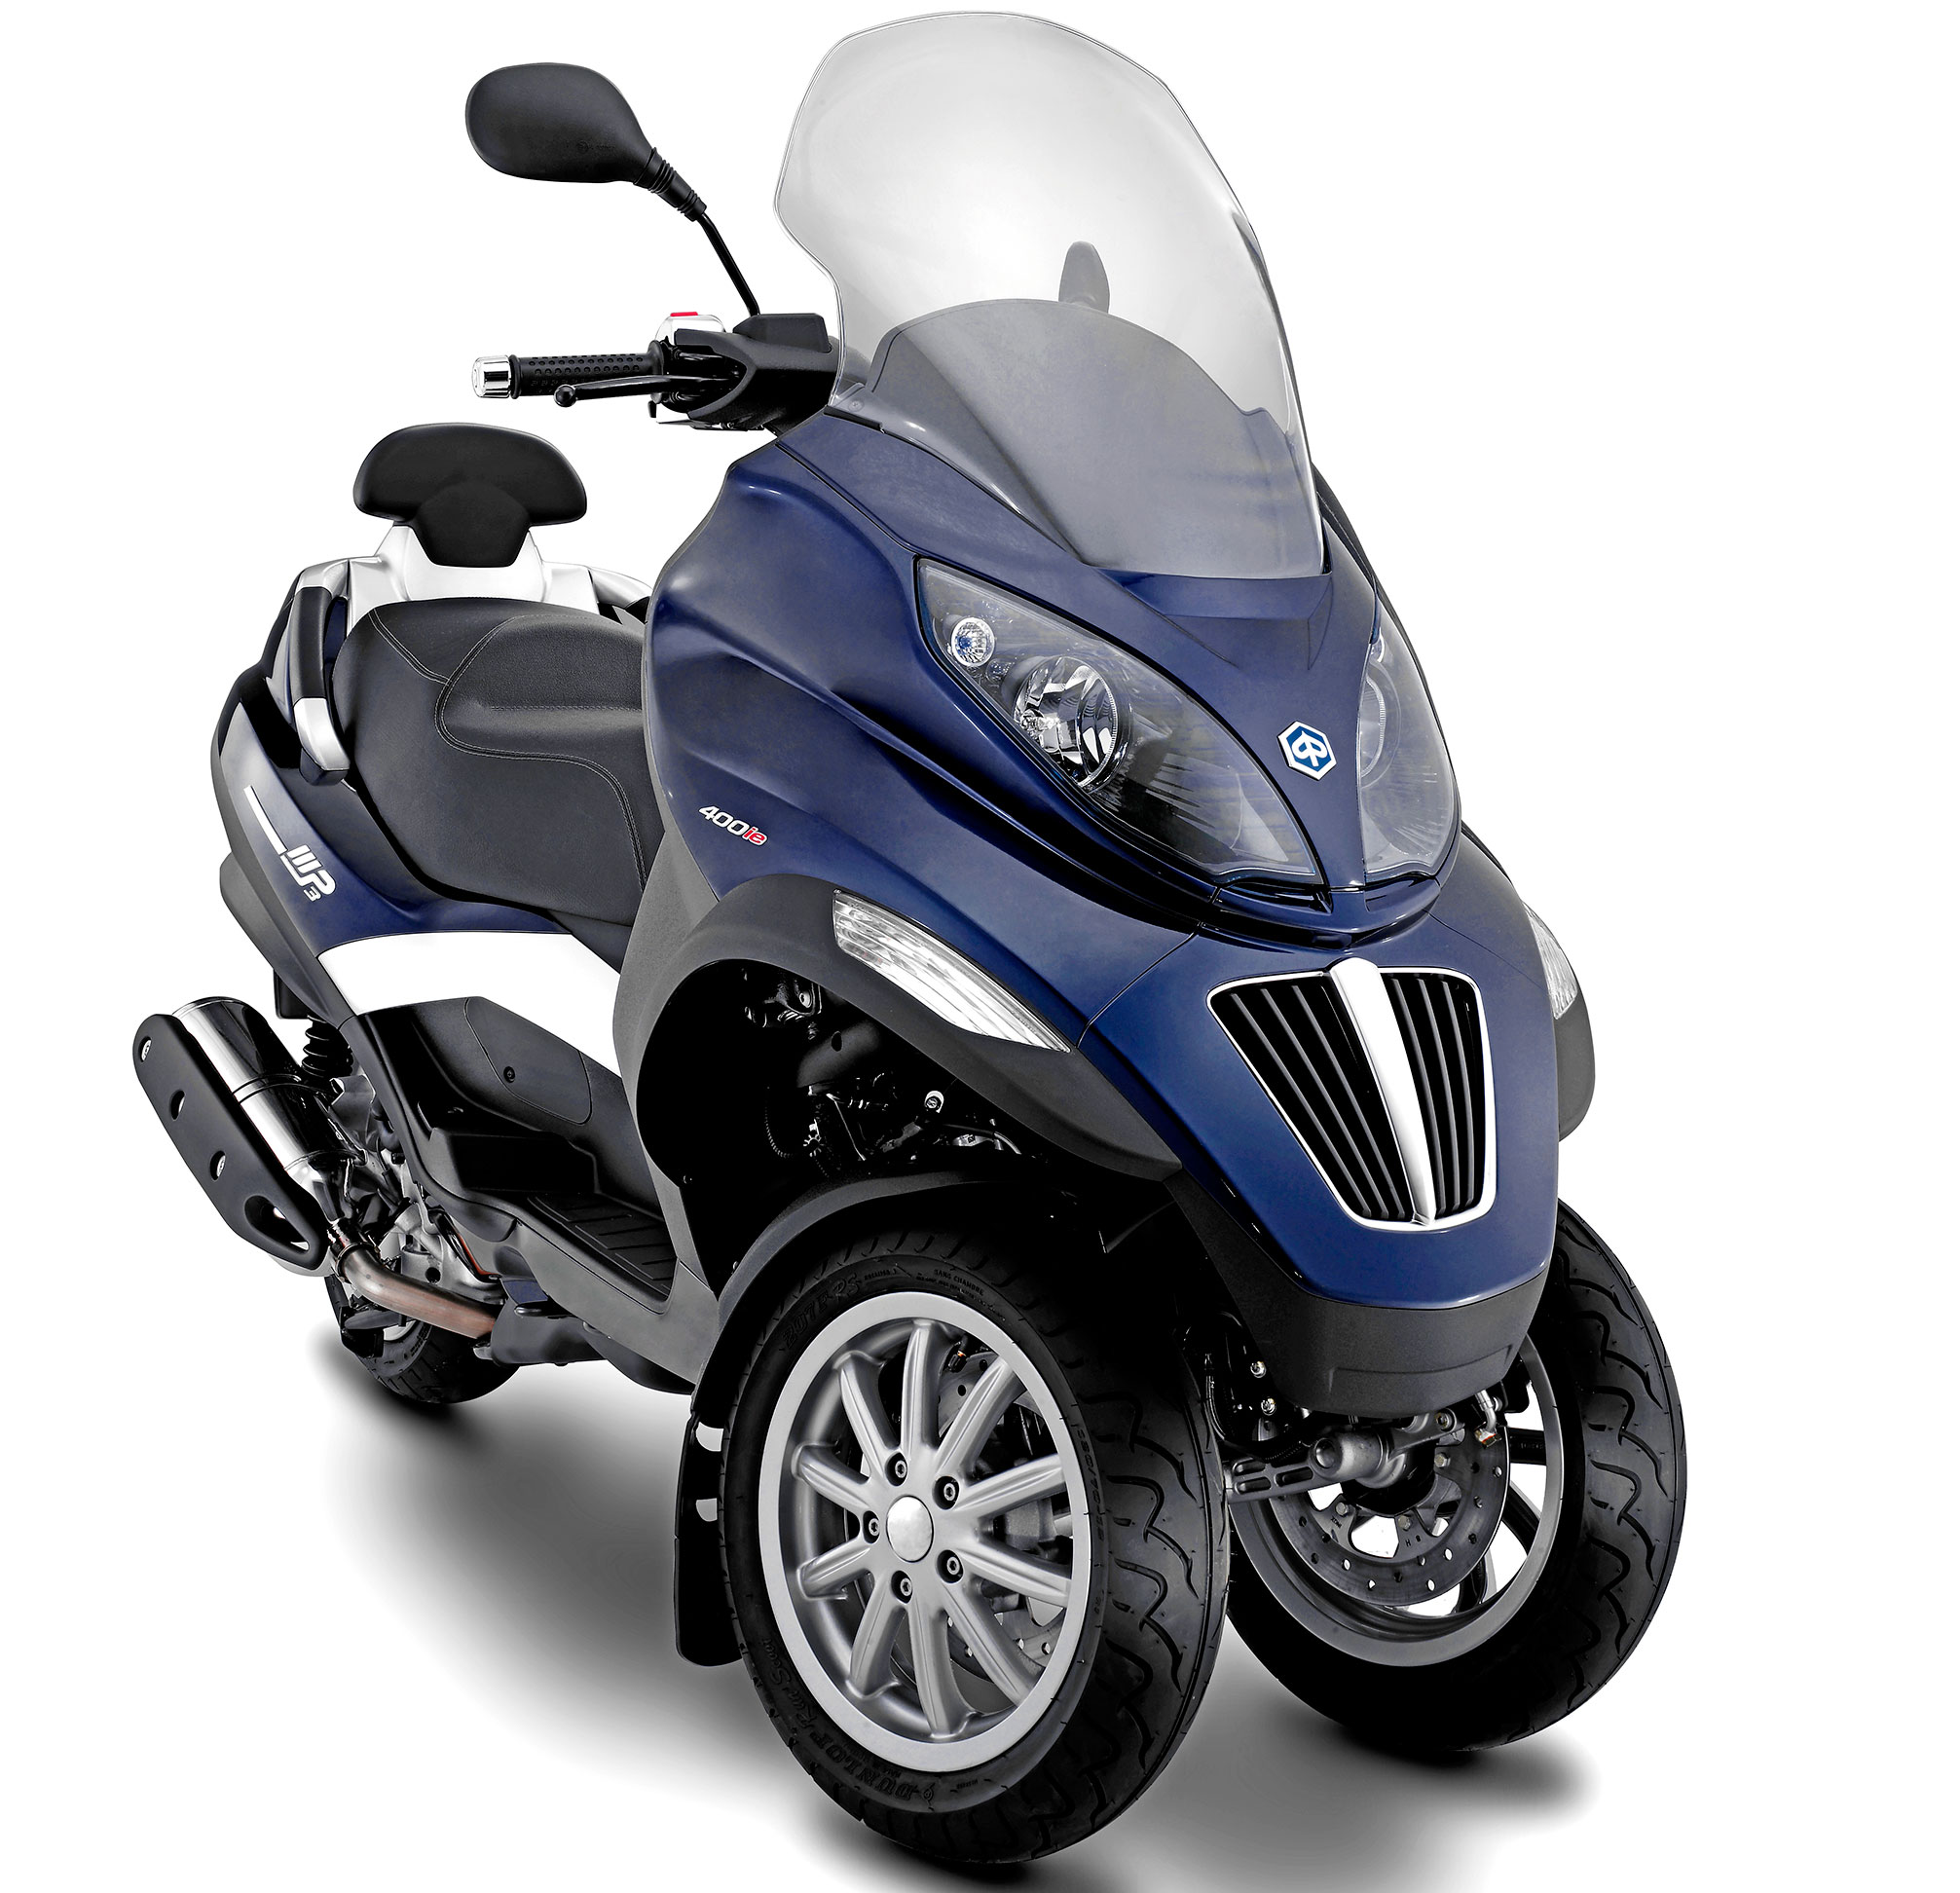 Piaggio MP3 400 images #120691